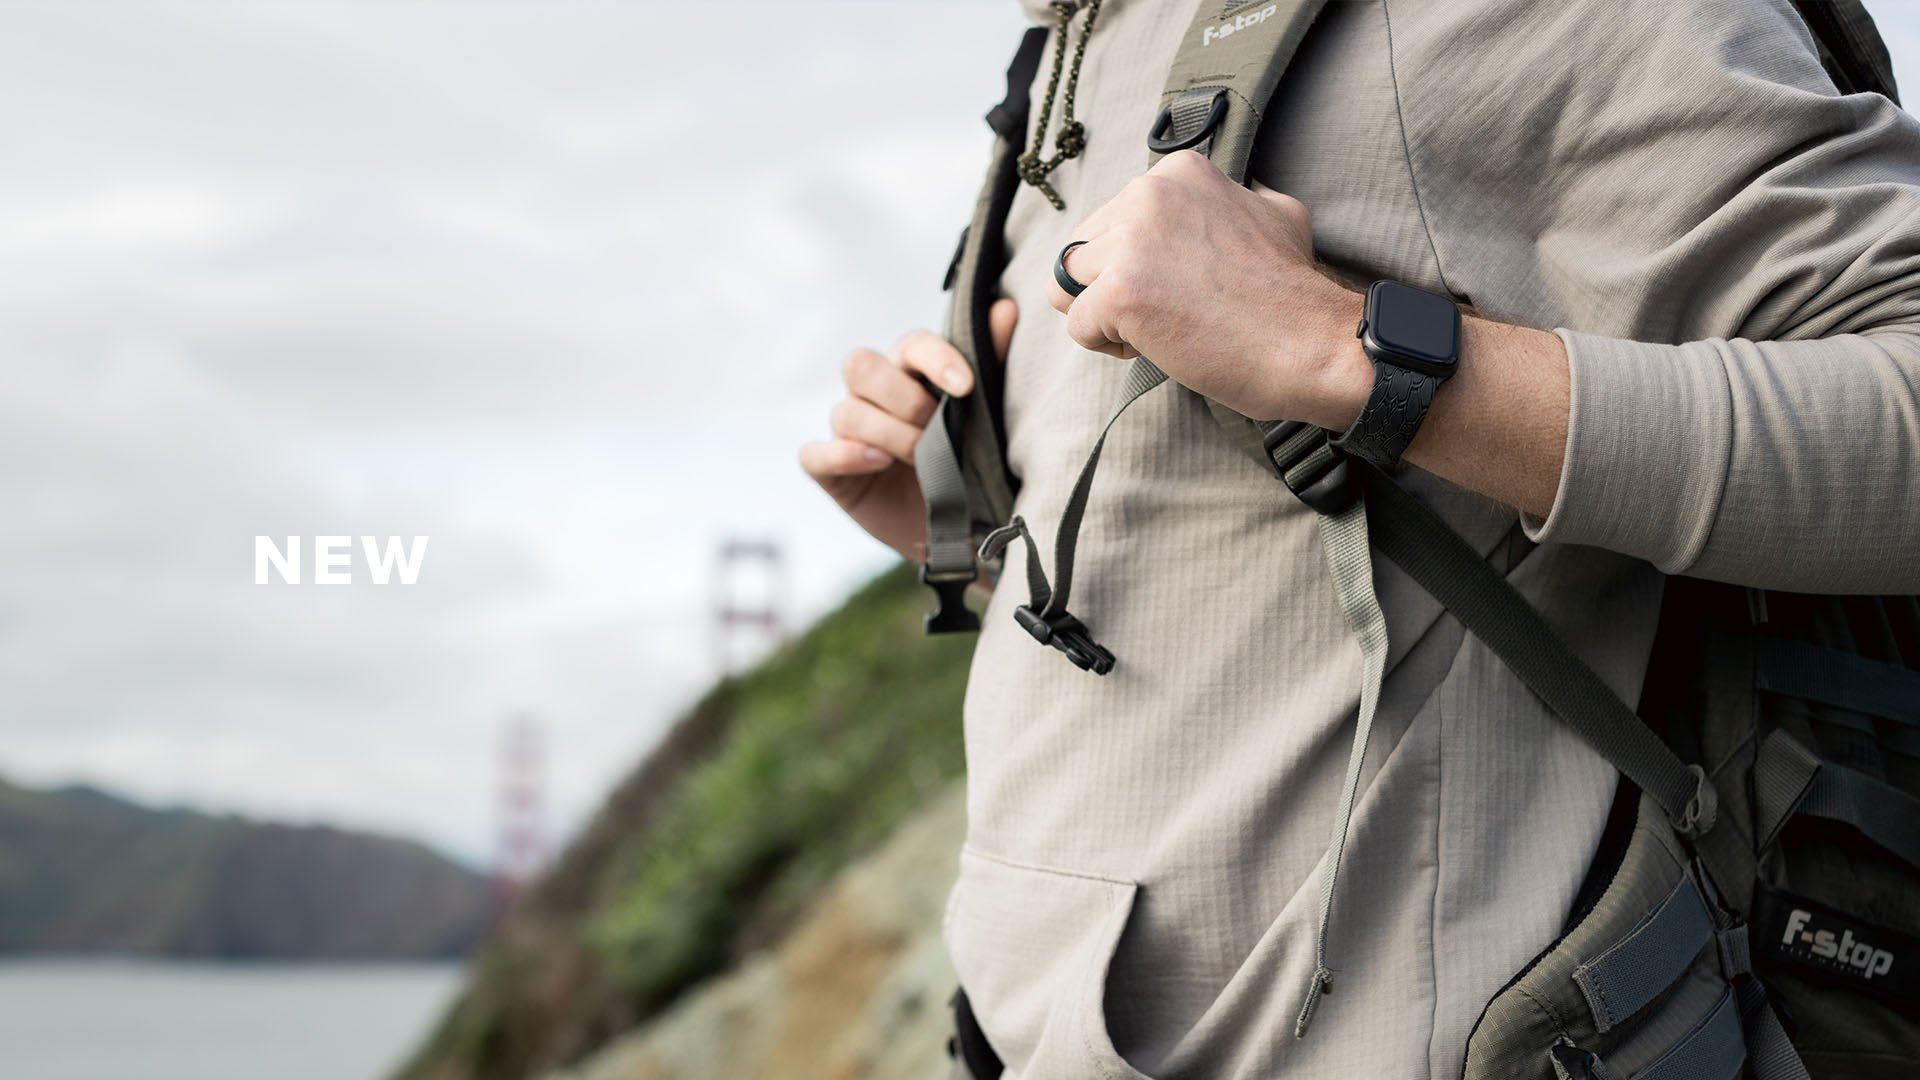 New, a man with a ring and black watch band holds on to his backpacks straps with a bridge in the background